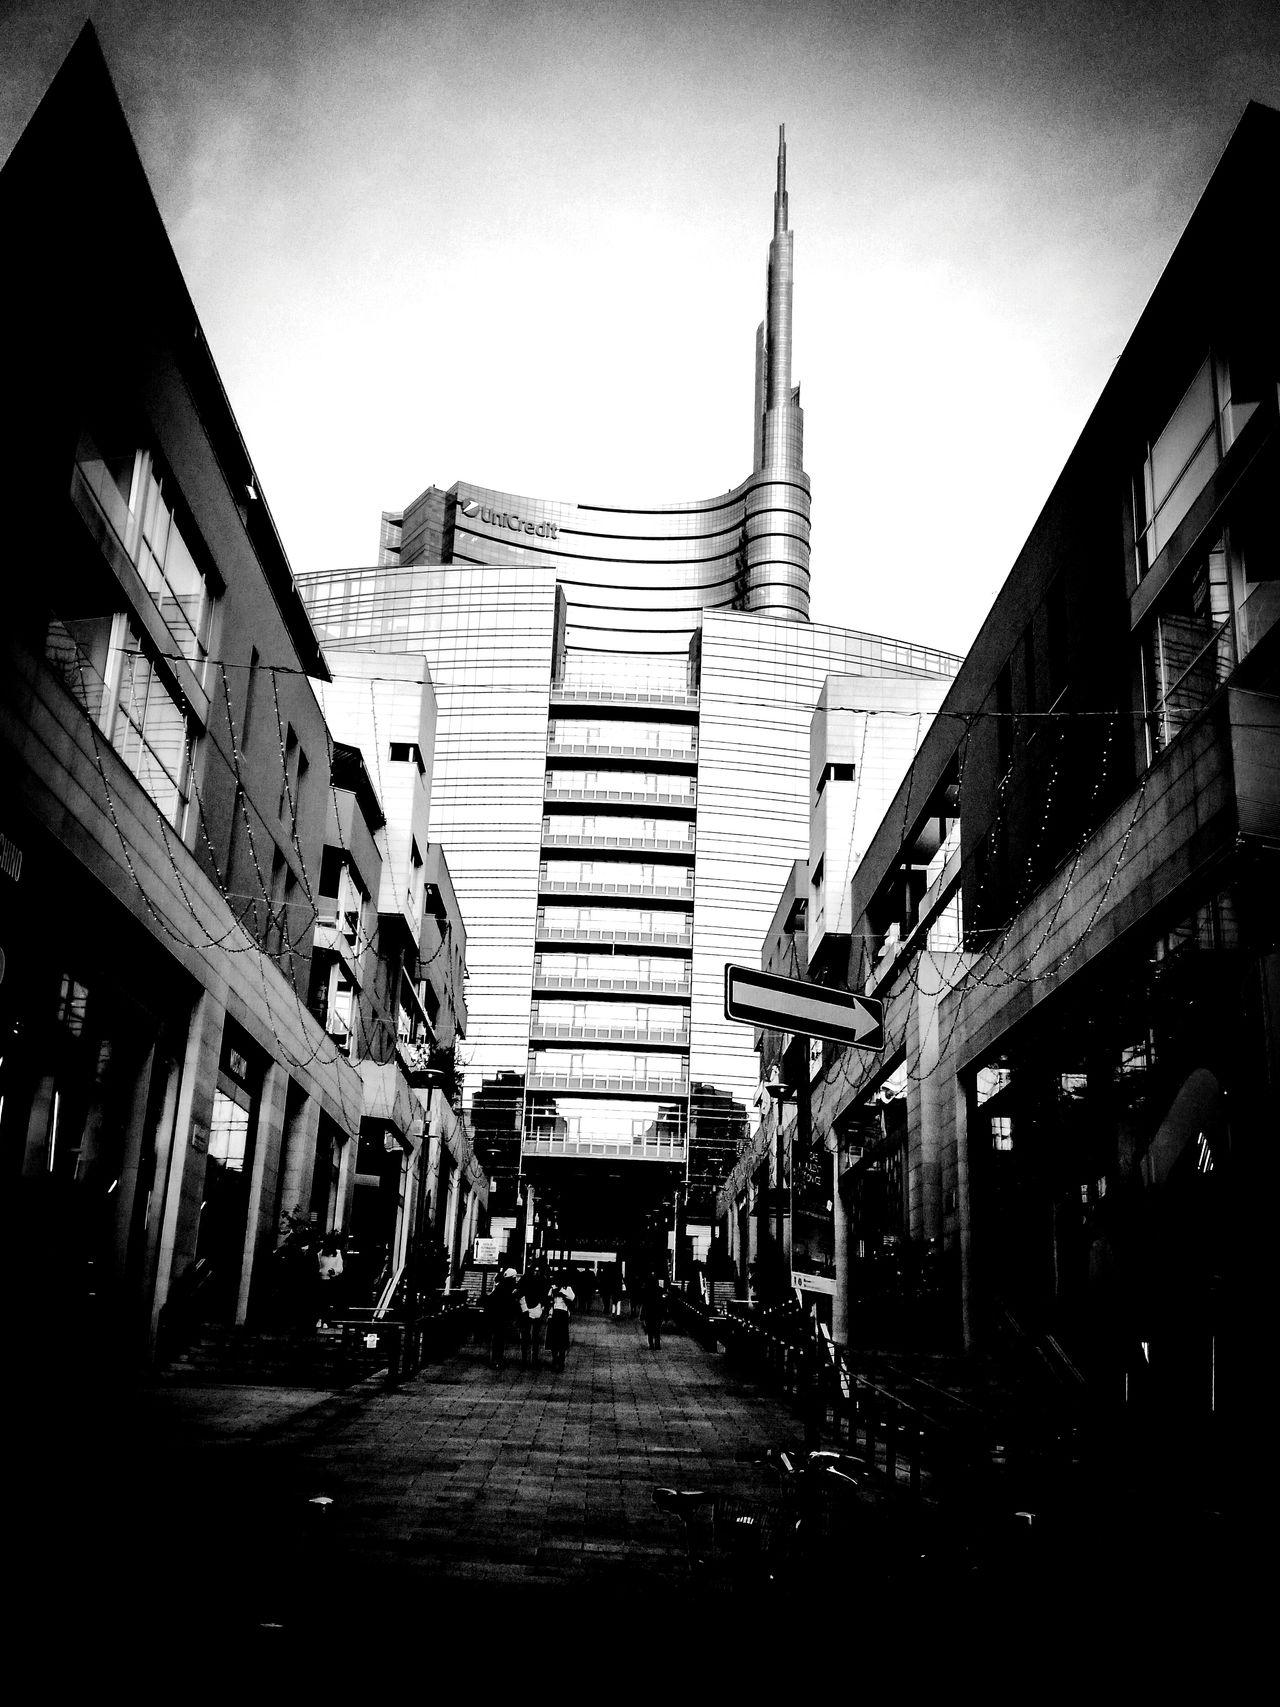 Architecture Built Structure Building Exterior City Sky Outdoors Milano Milan Italy Urban Urban Geometry Urban Landscape Urbanphotography Urban Skyline Urban Lifestyle Urban Exploration Architecture_collection Architecturelovers Blackandwhite Blackandwhite Photography First Eyeem Photo